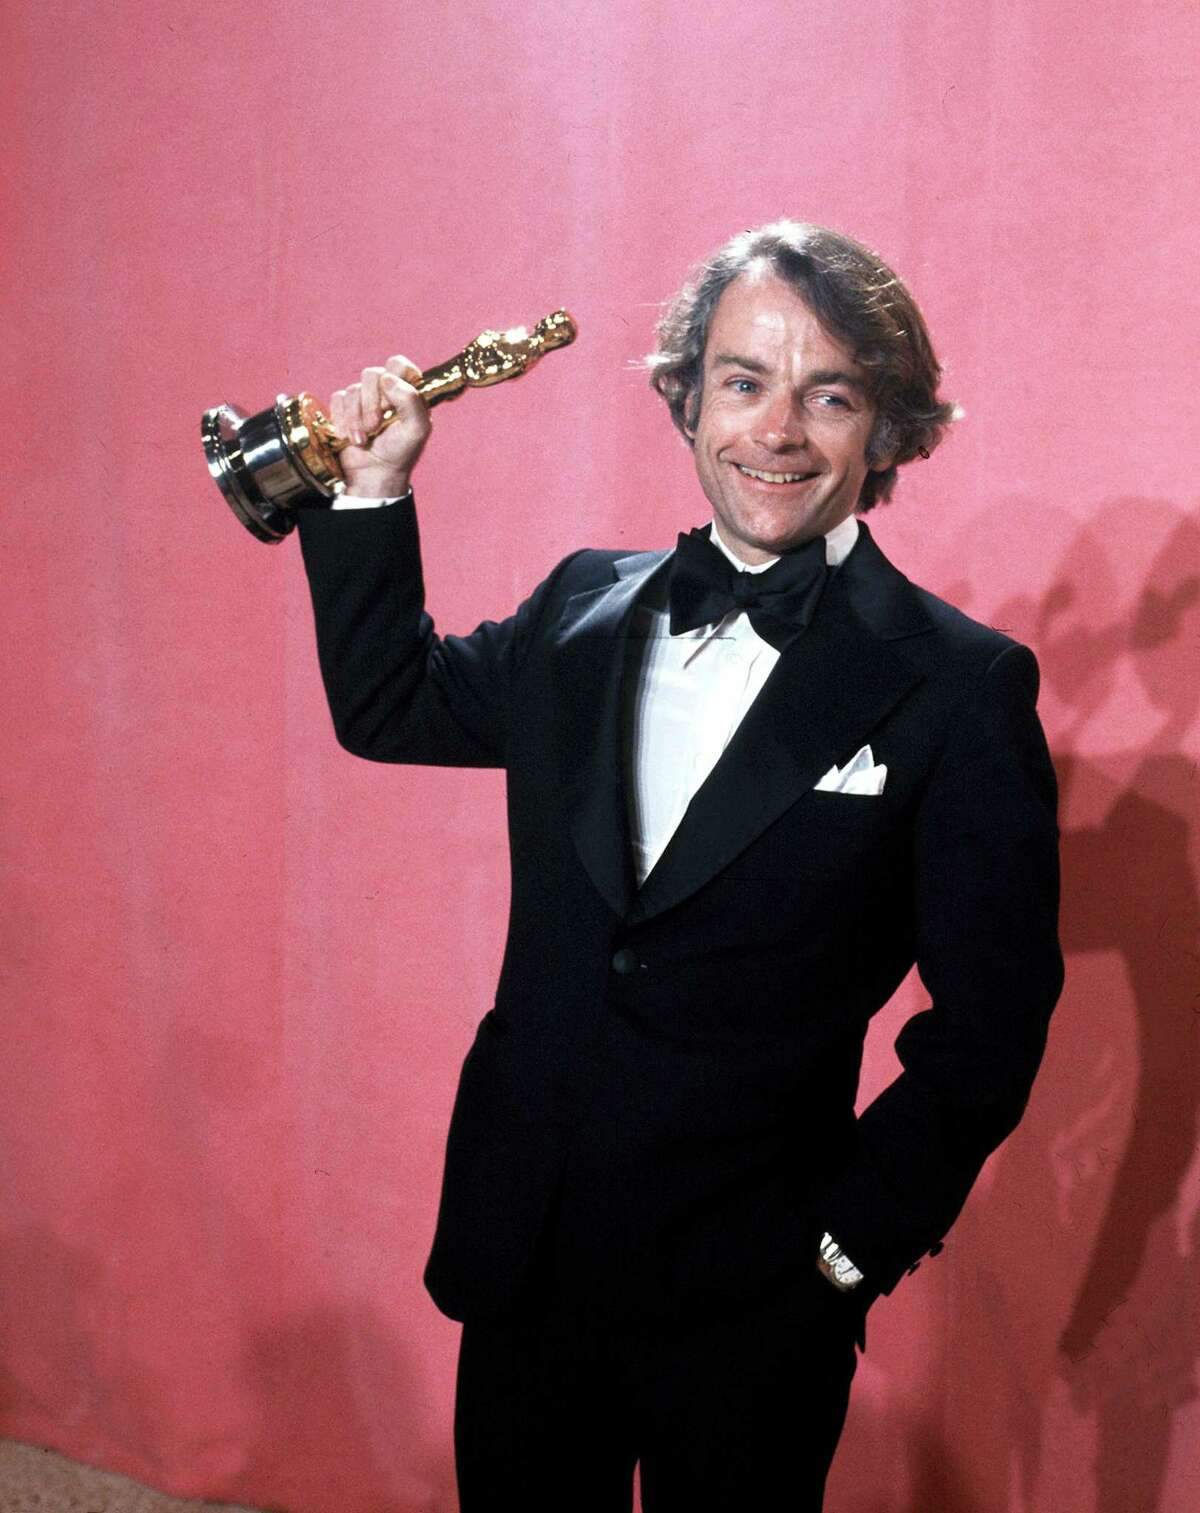 """In this March 28, 1977, file photo, John C. Avildsen shows off the Oscar he won for best director for """"Rocky,"""" at the Academy Awards in Los Angeles. Avildsen, who directed """"Rocky"""" and """"The Karate Kid,"""" the hugely successful underdog fables that went on to become Hollywood franchises, has died at age 81. Avildsen's son Anthony says his father died Friday, June 16, 2017, in Los Angeles from pancreatic cancer."""